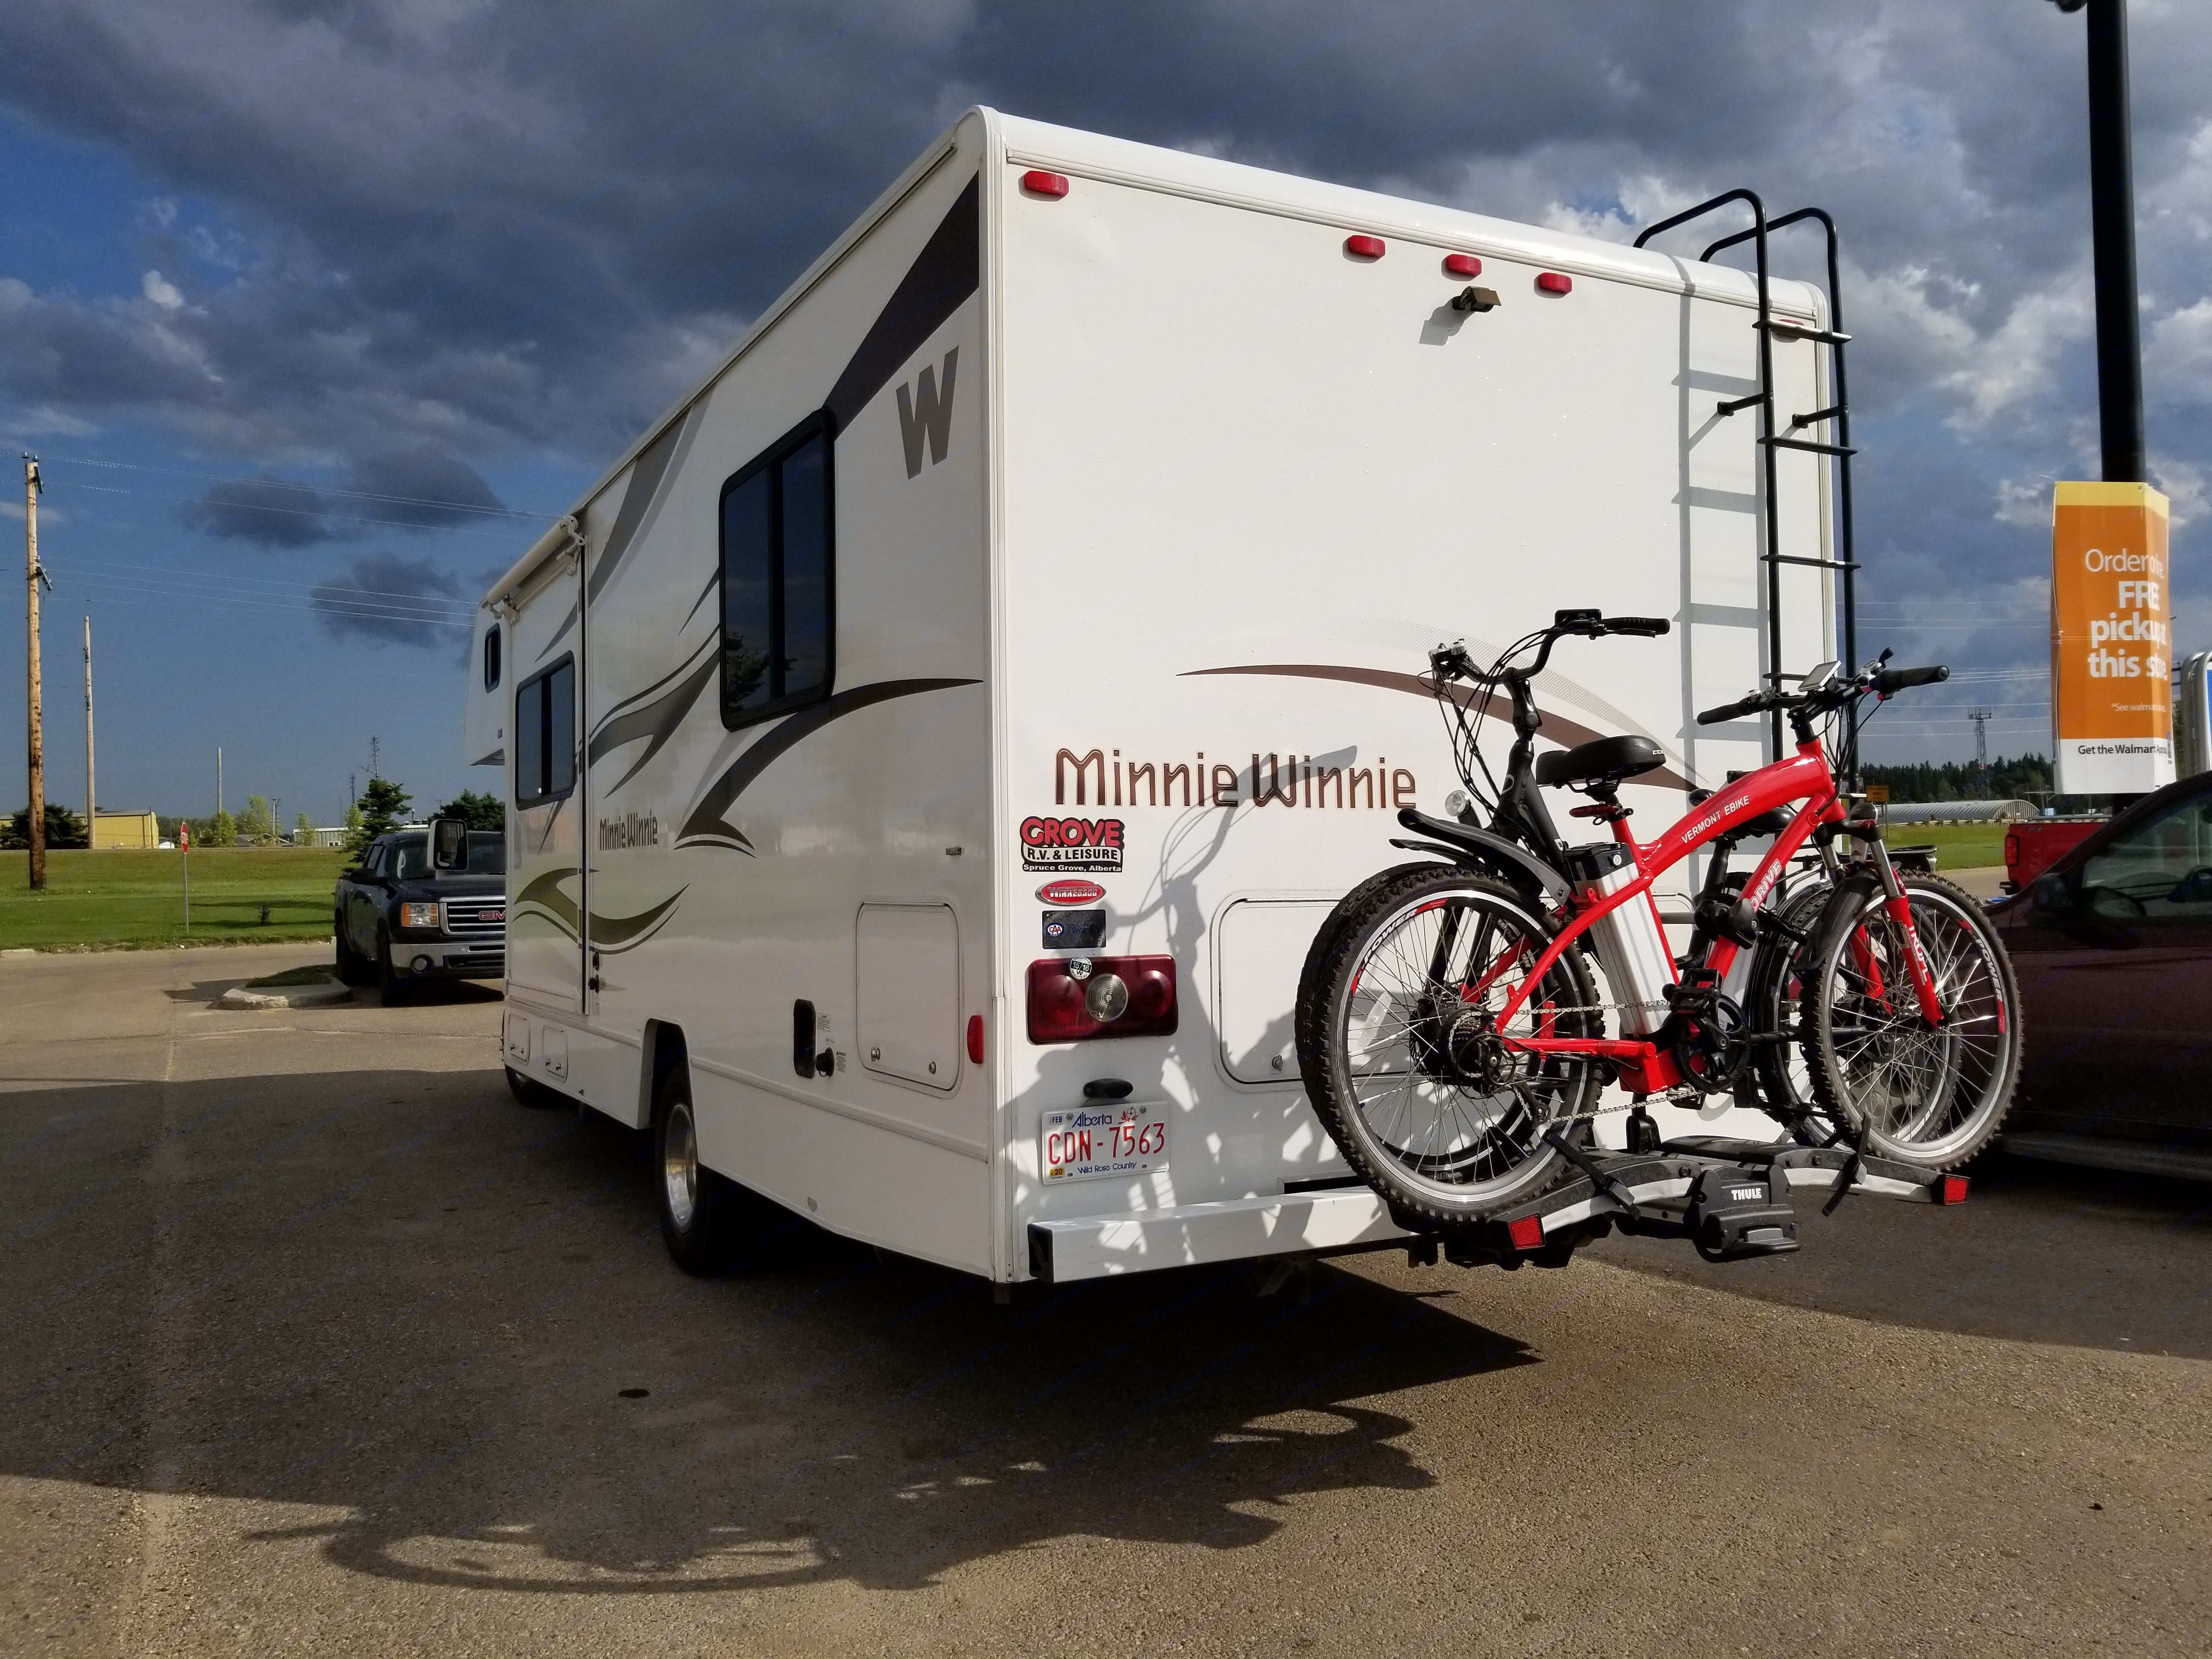 Bike Carrier F available at additional cost of $100. Winnebago Minnie Winnie 2015